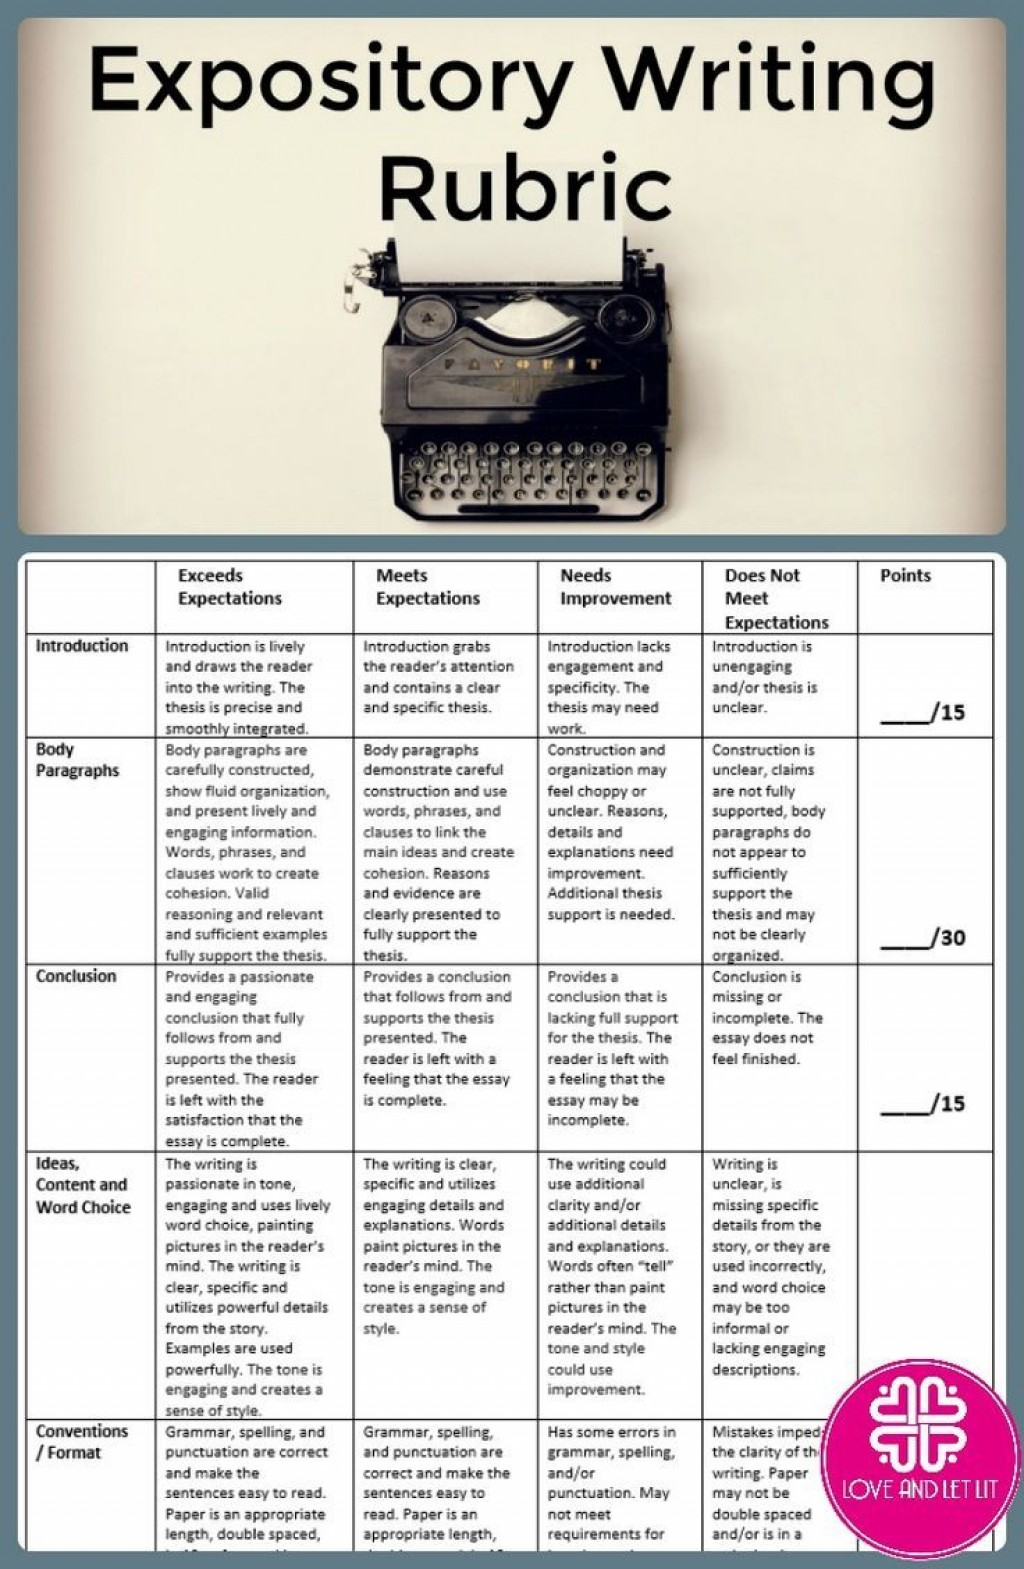 009 Expository Essay Rubric Example Awesome 5th Grade Informative Writing 4 7th Large